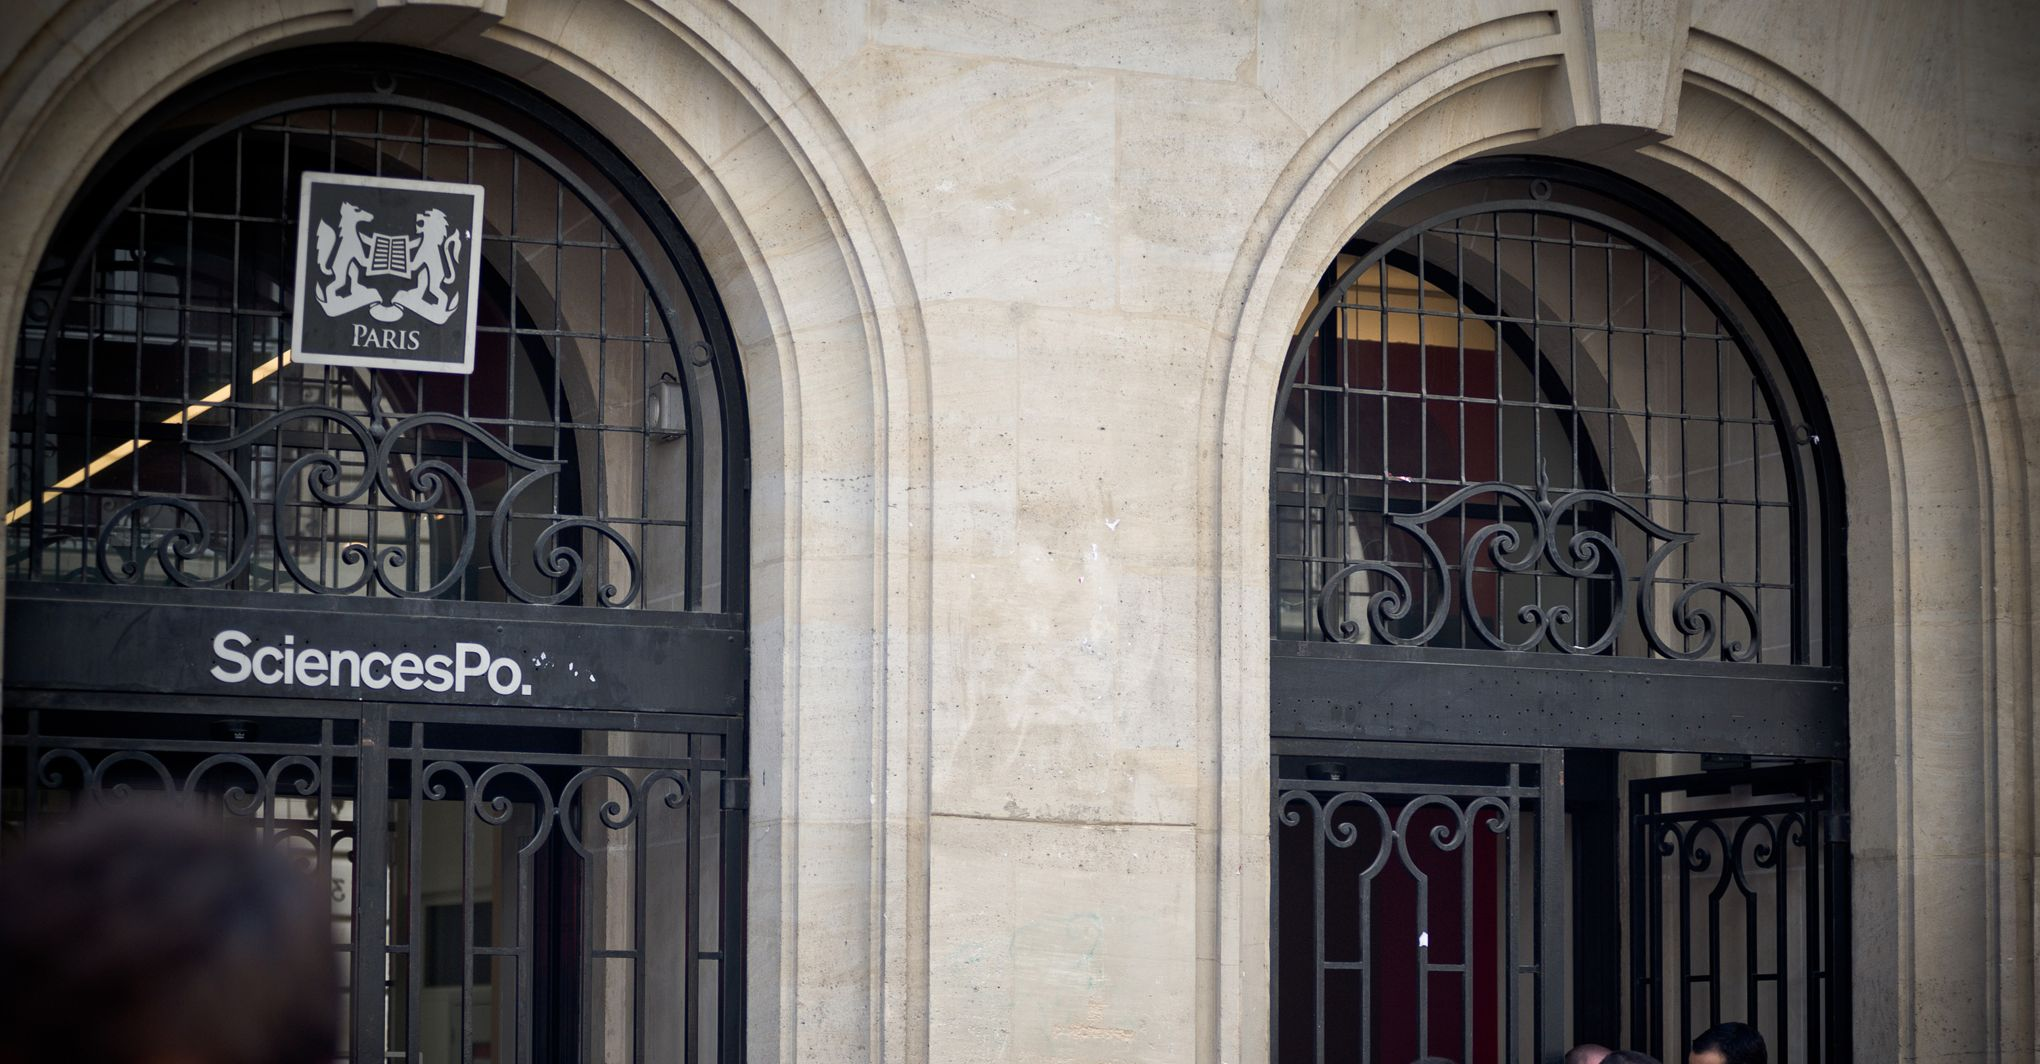 Le front national pr pare son arriv e sciences po paris - 9 rue de la chaise sciences po ...